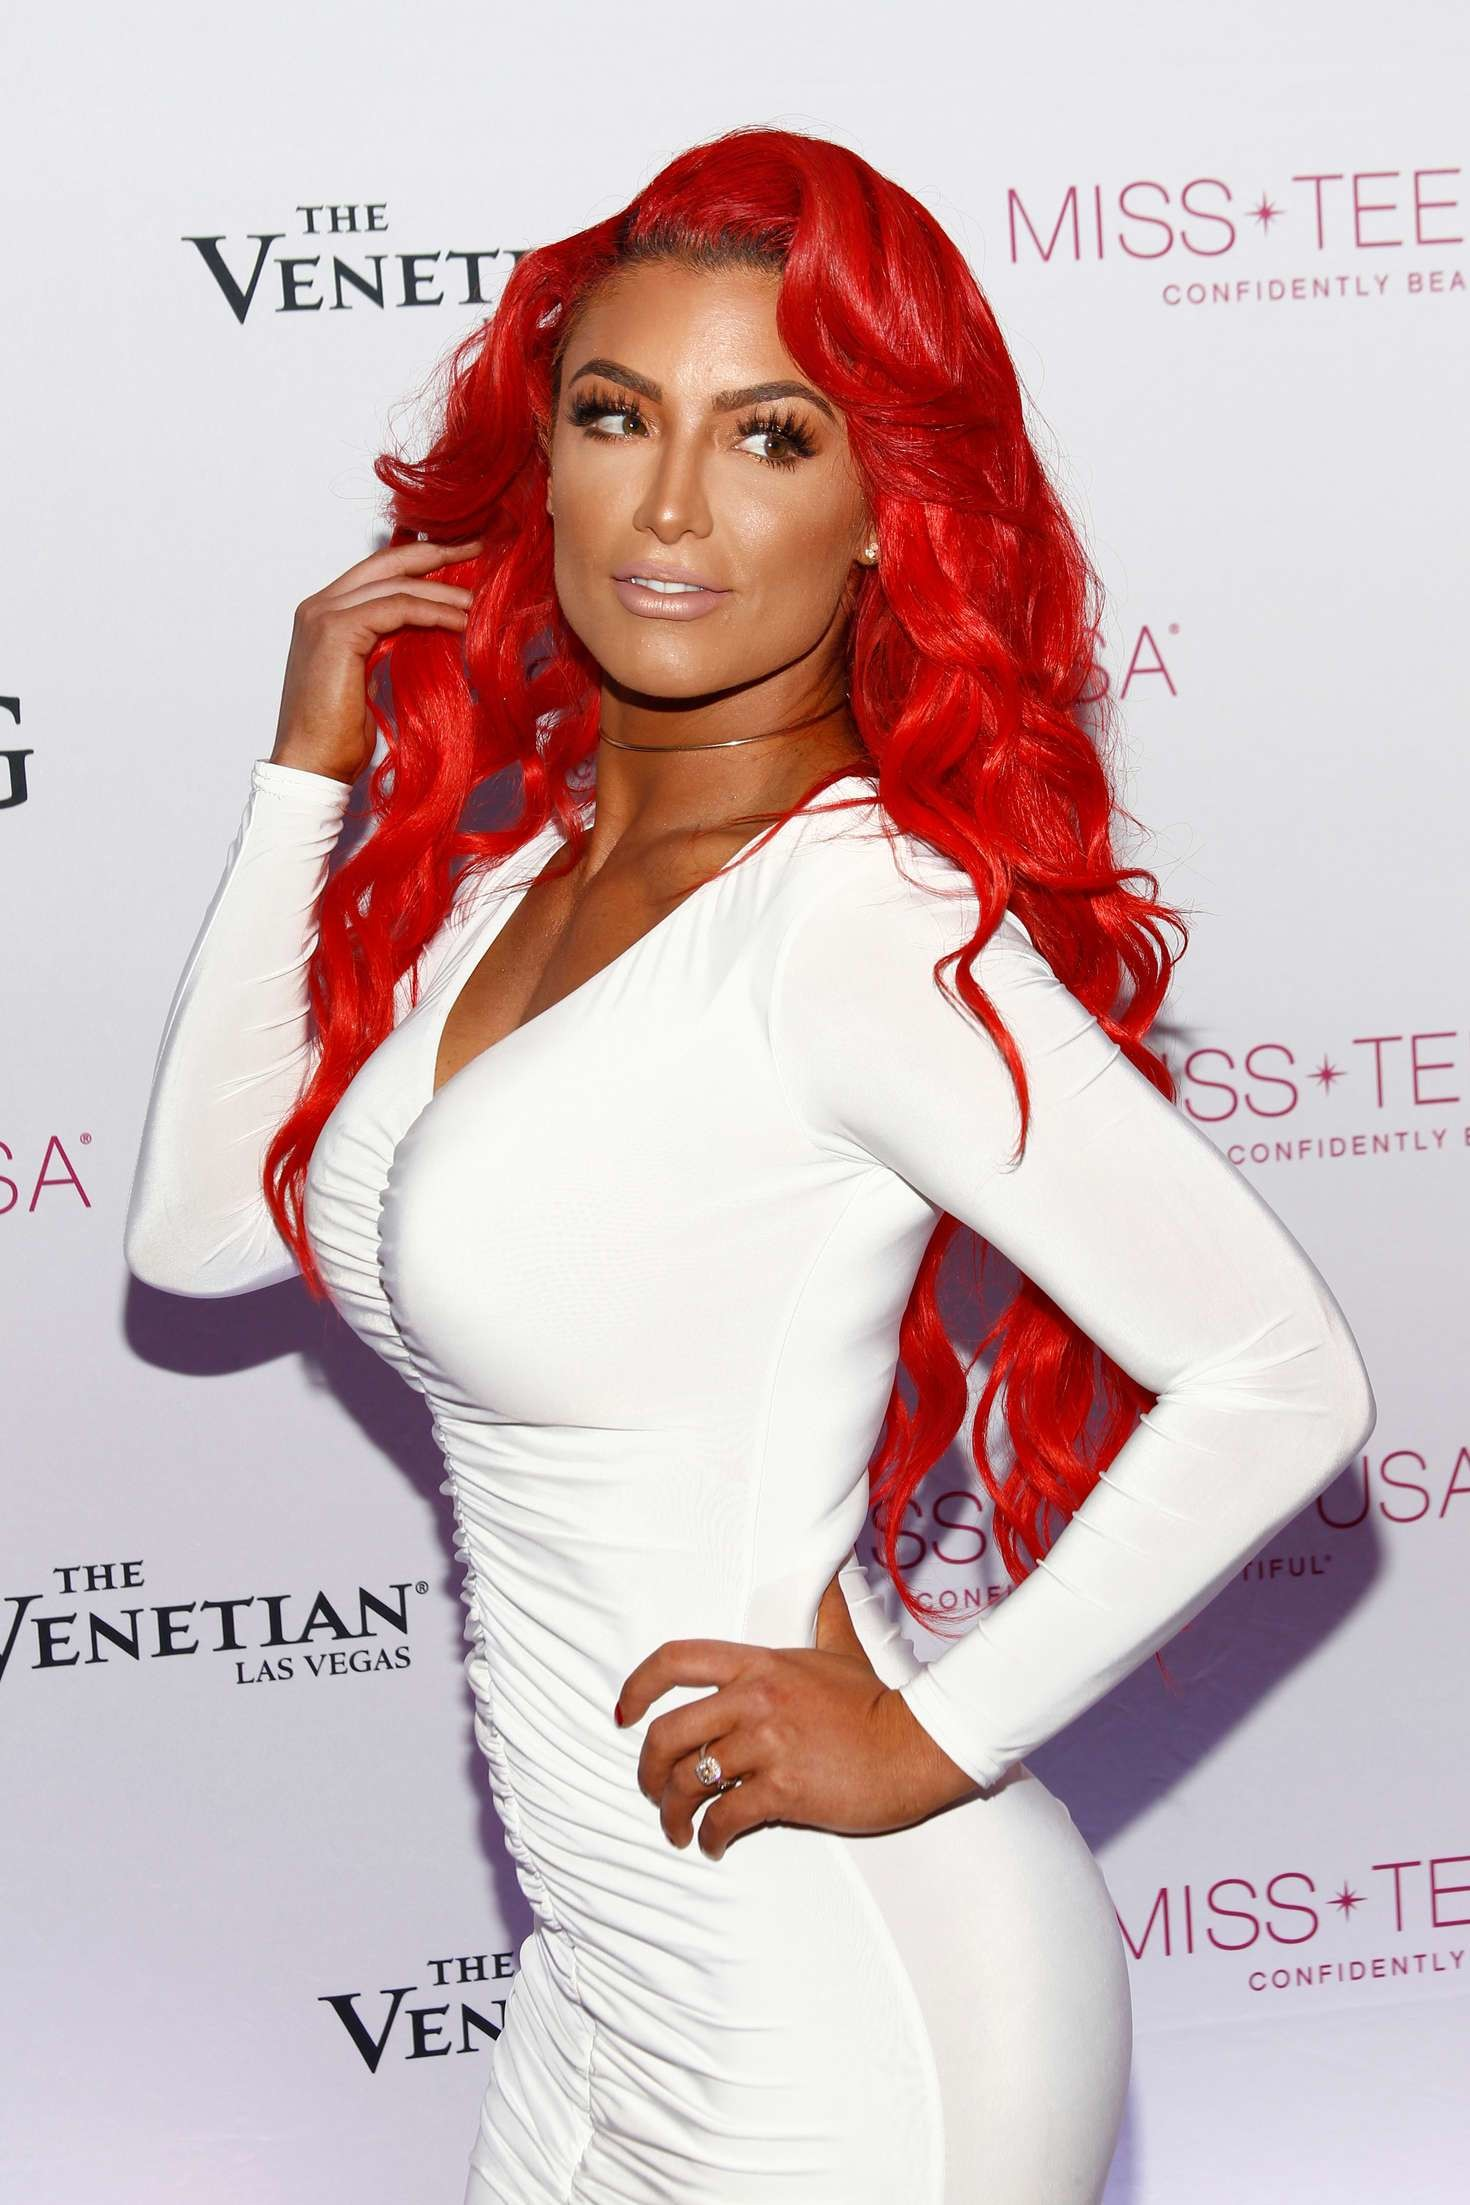 Eva Marie Wallpapers 183 ① Wallpapertag